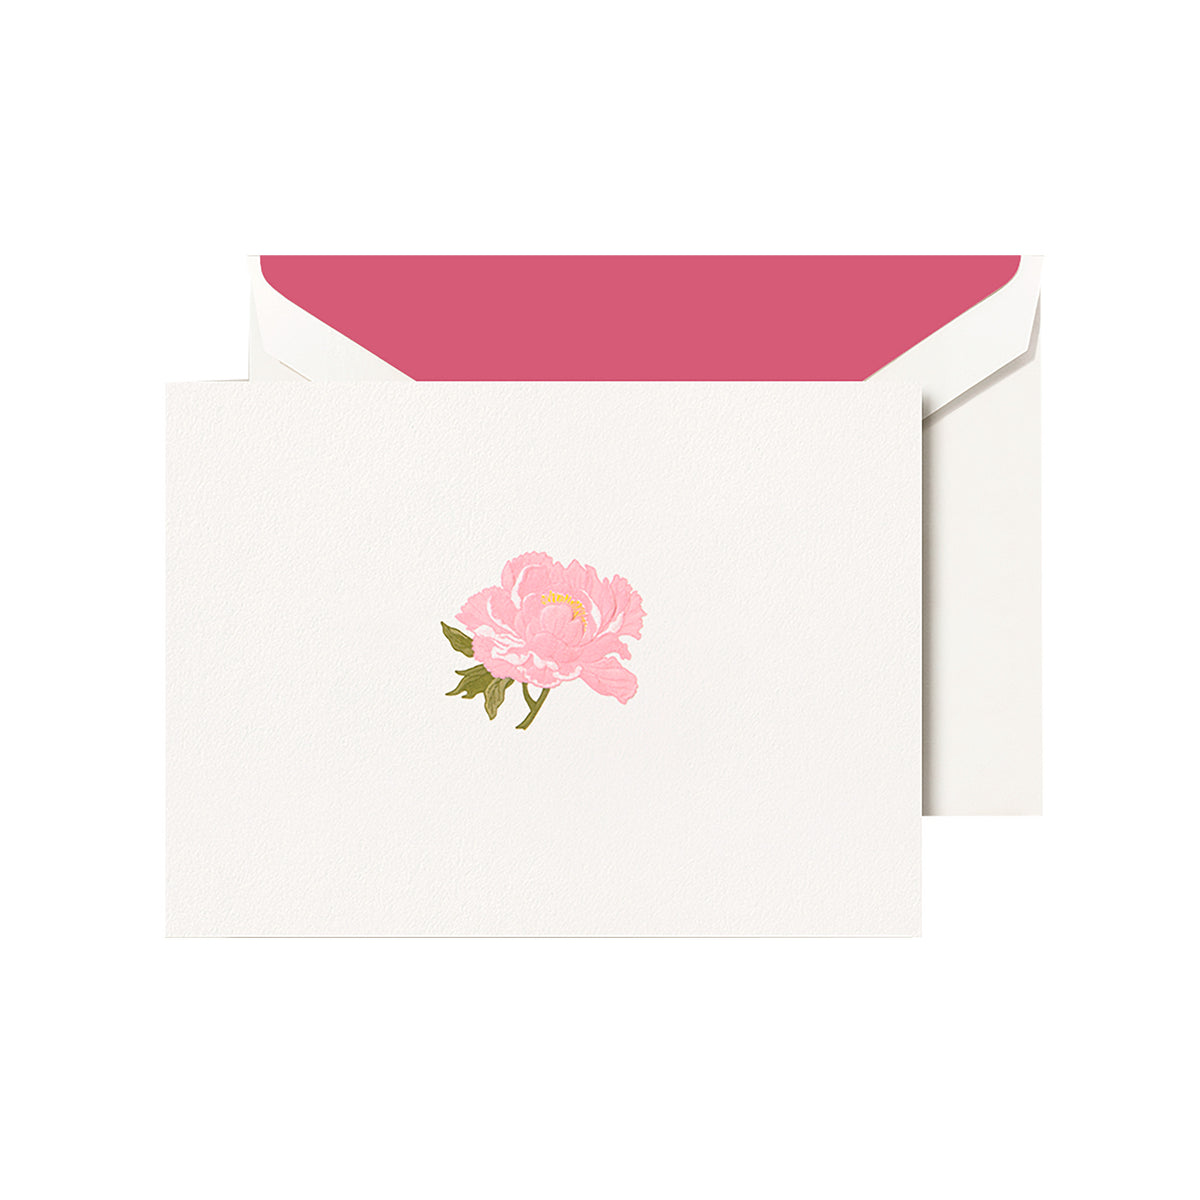 Crane - Peony Classic Note with Fuschia Lining, Set of 10